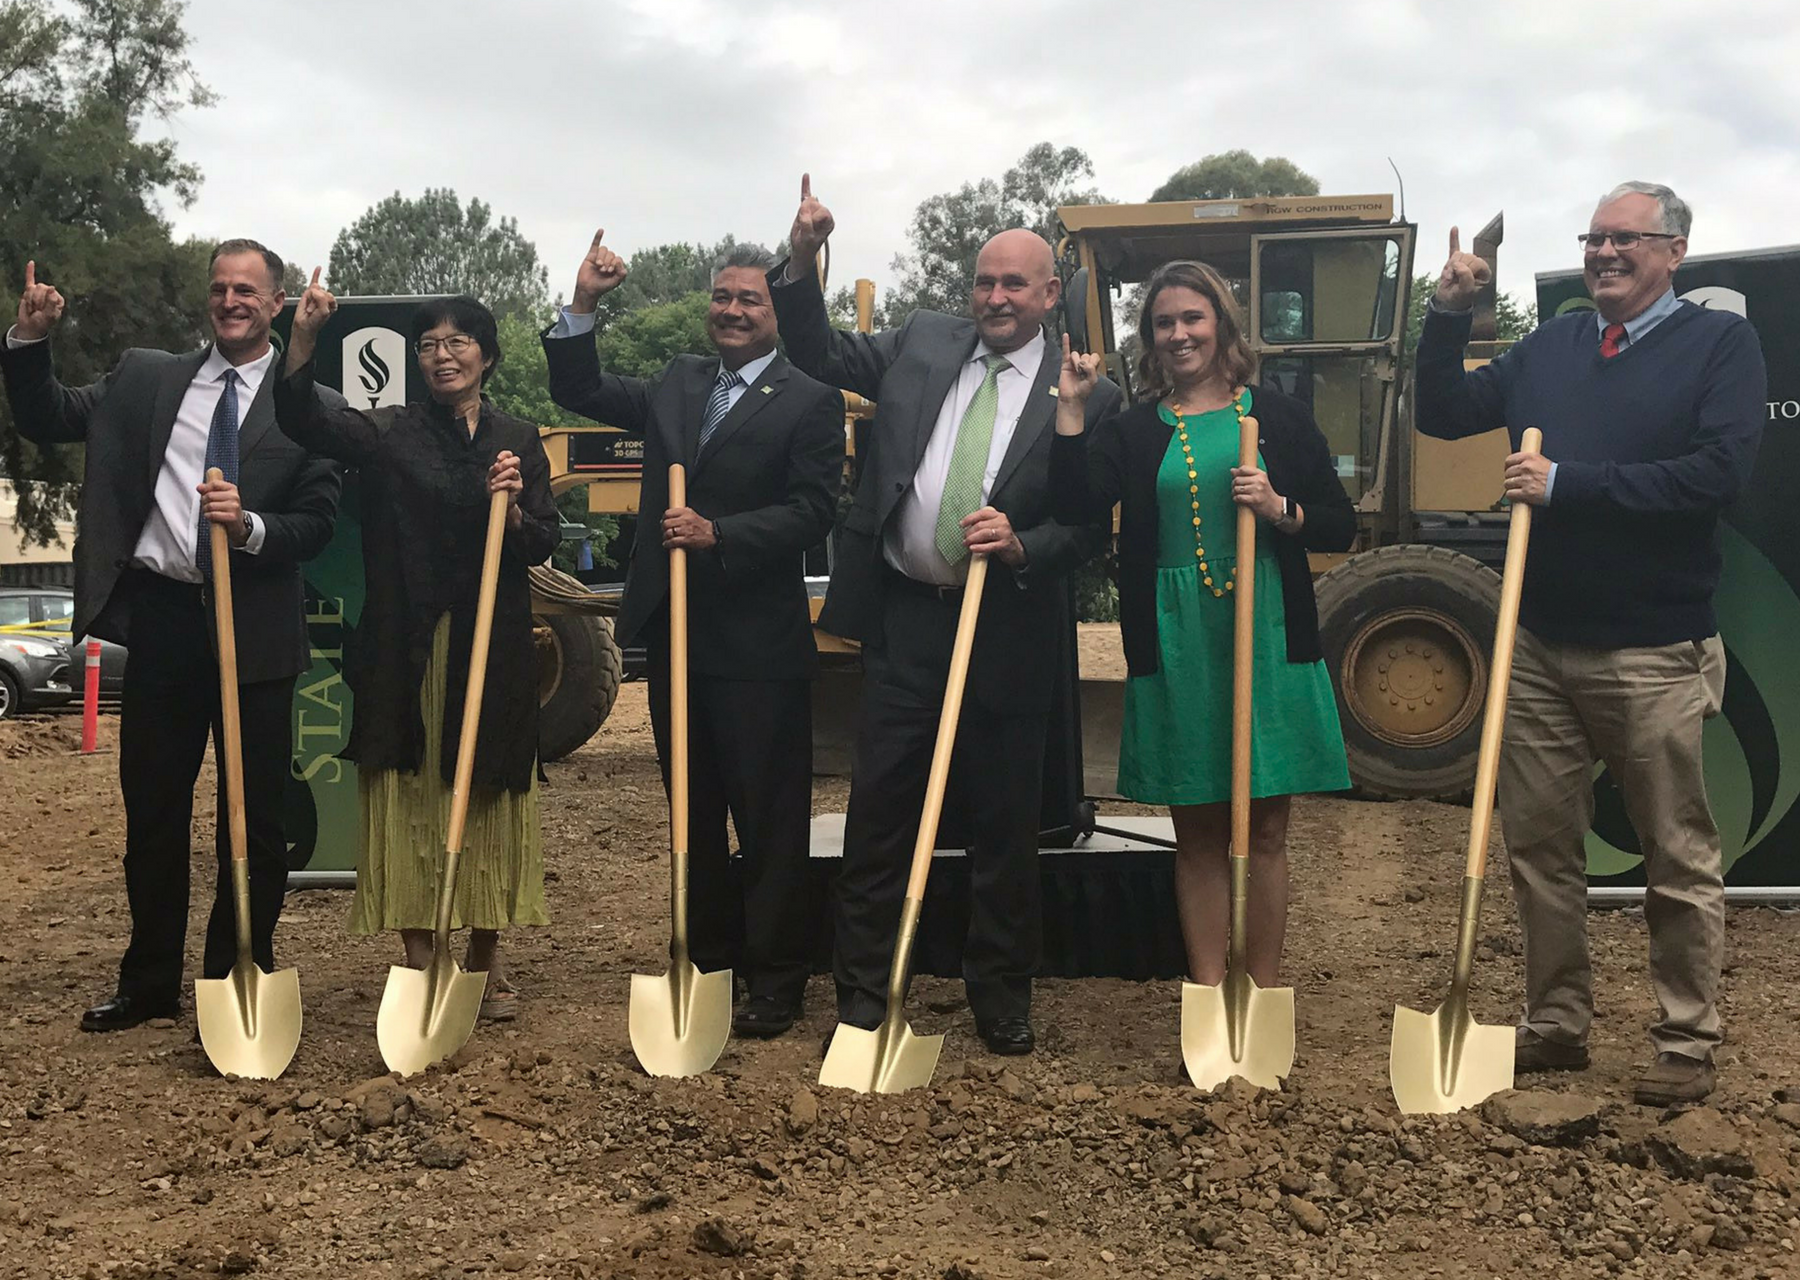 Sacramento State staff and President Robert Nelsen, third from the left, hold golden shovels at groundbreaking ceremony for Parking Structure V on Friday. (Photo by Rin Carbin)